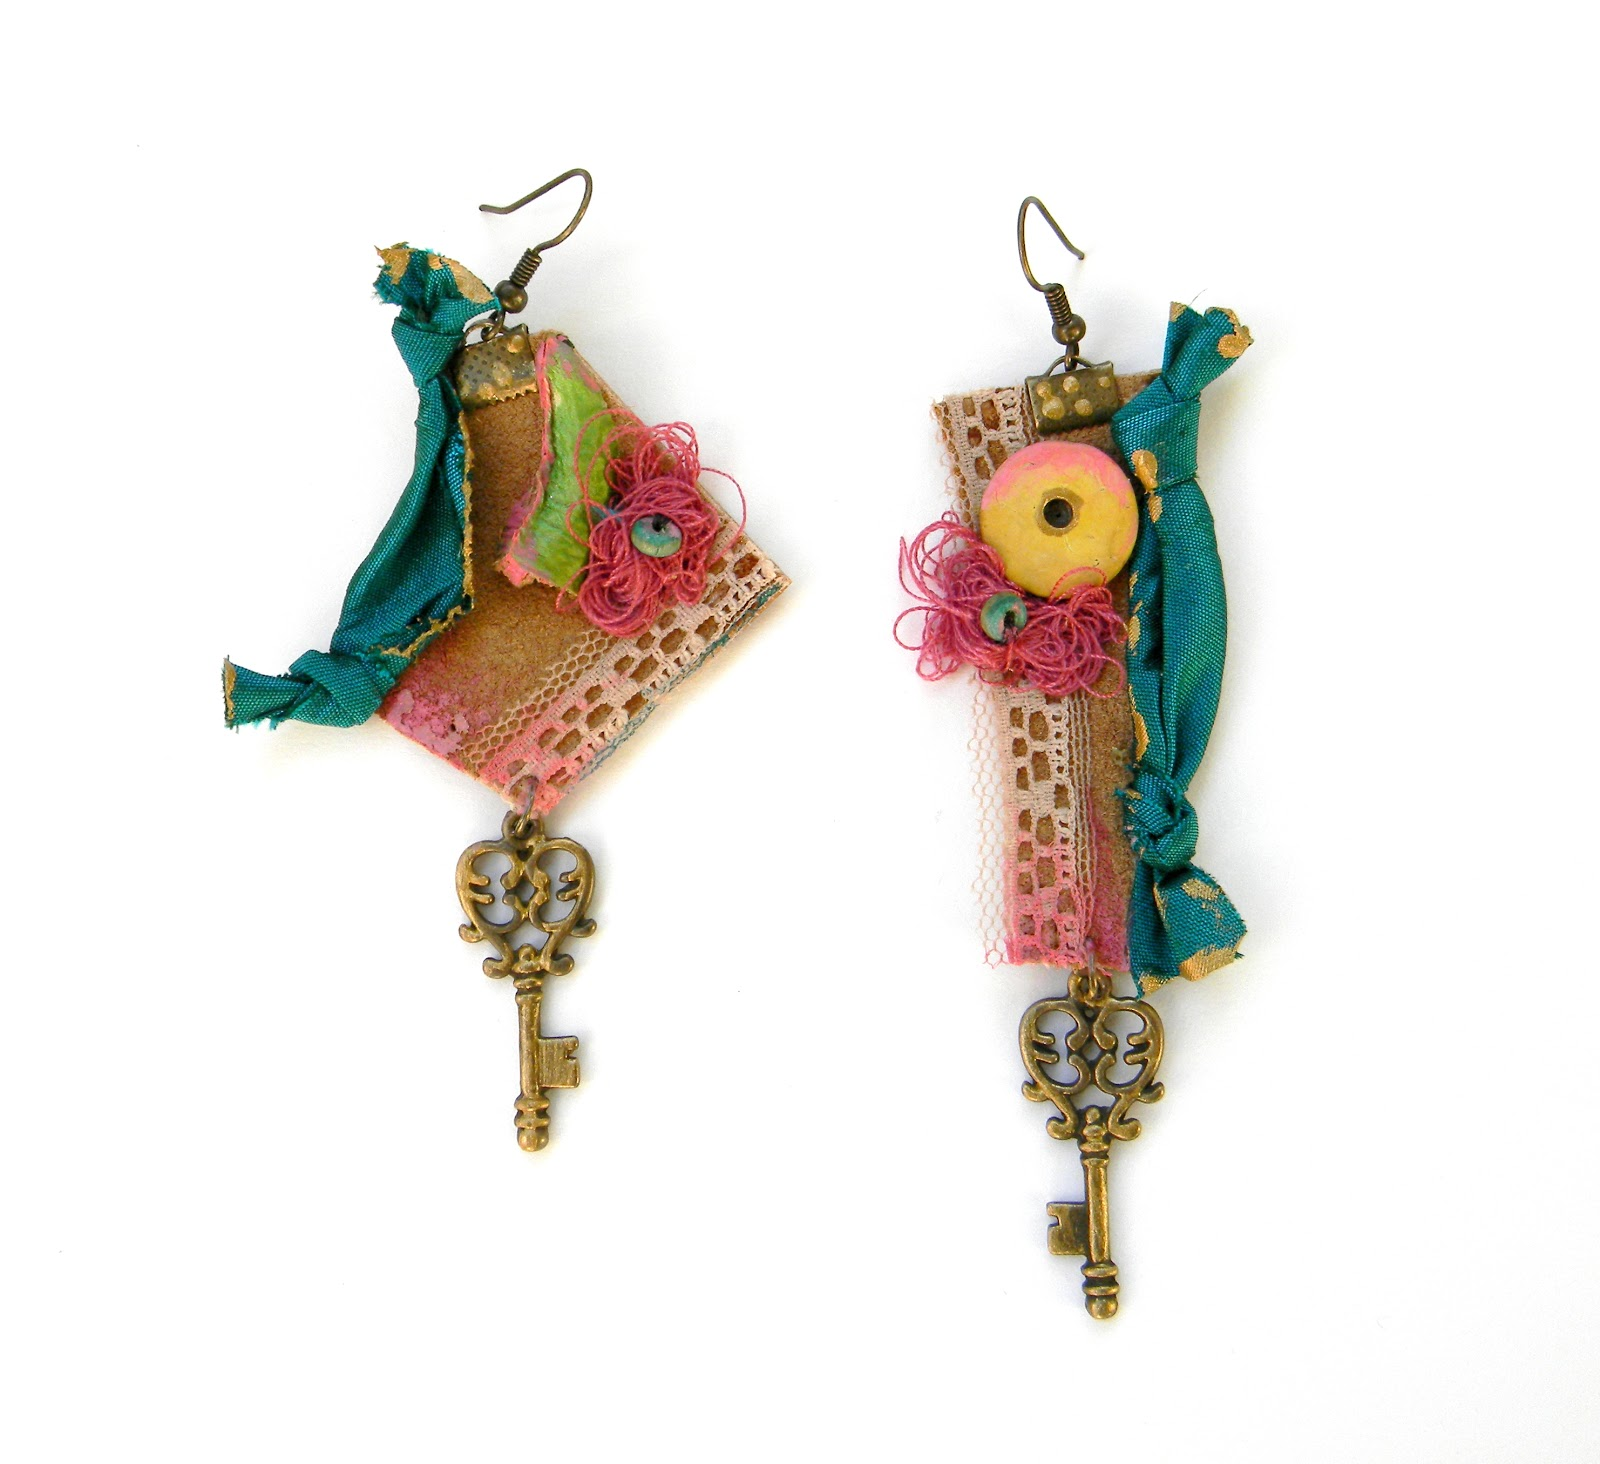 Handmade Earrings Steampunk Ecio Chic Colorful Jewelry